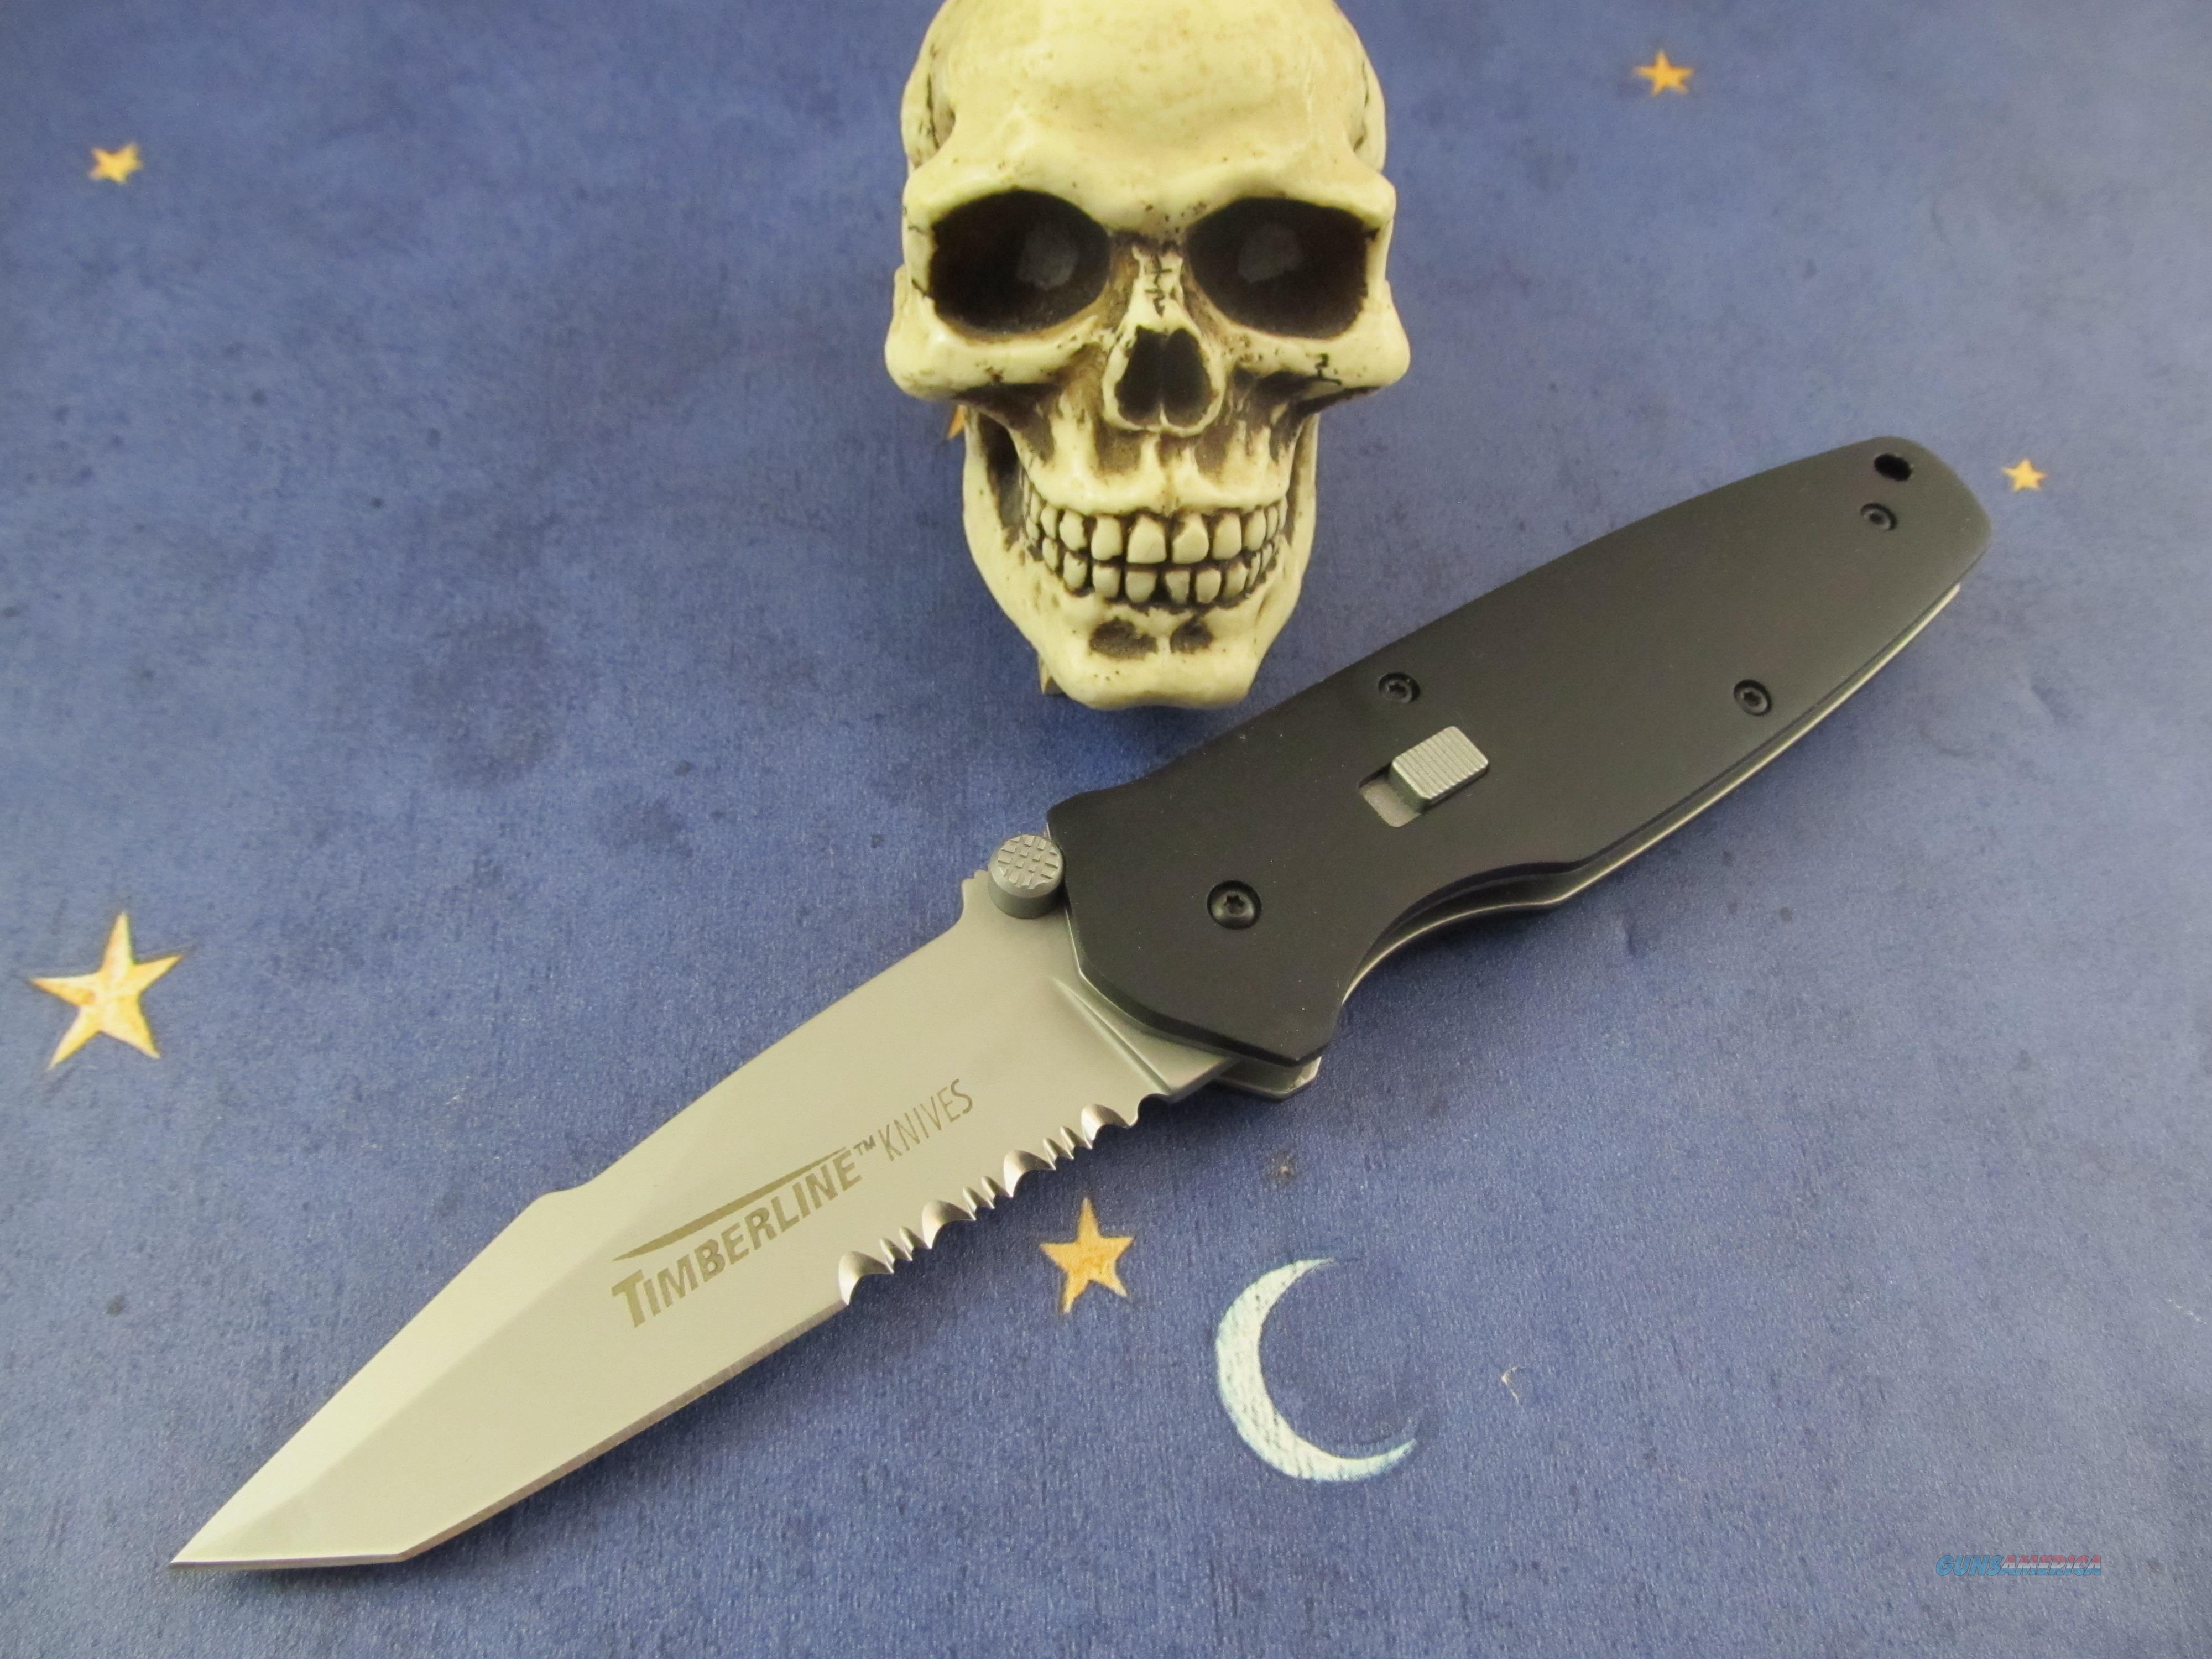 Timberline Knives Vintage Assisted Opening Knife  Non-Guns > Knives/Swords > Knives > Folding Blade > Hand Made